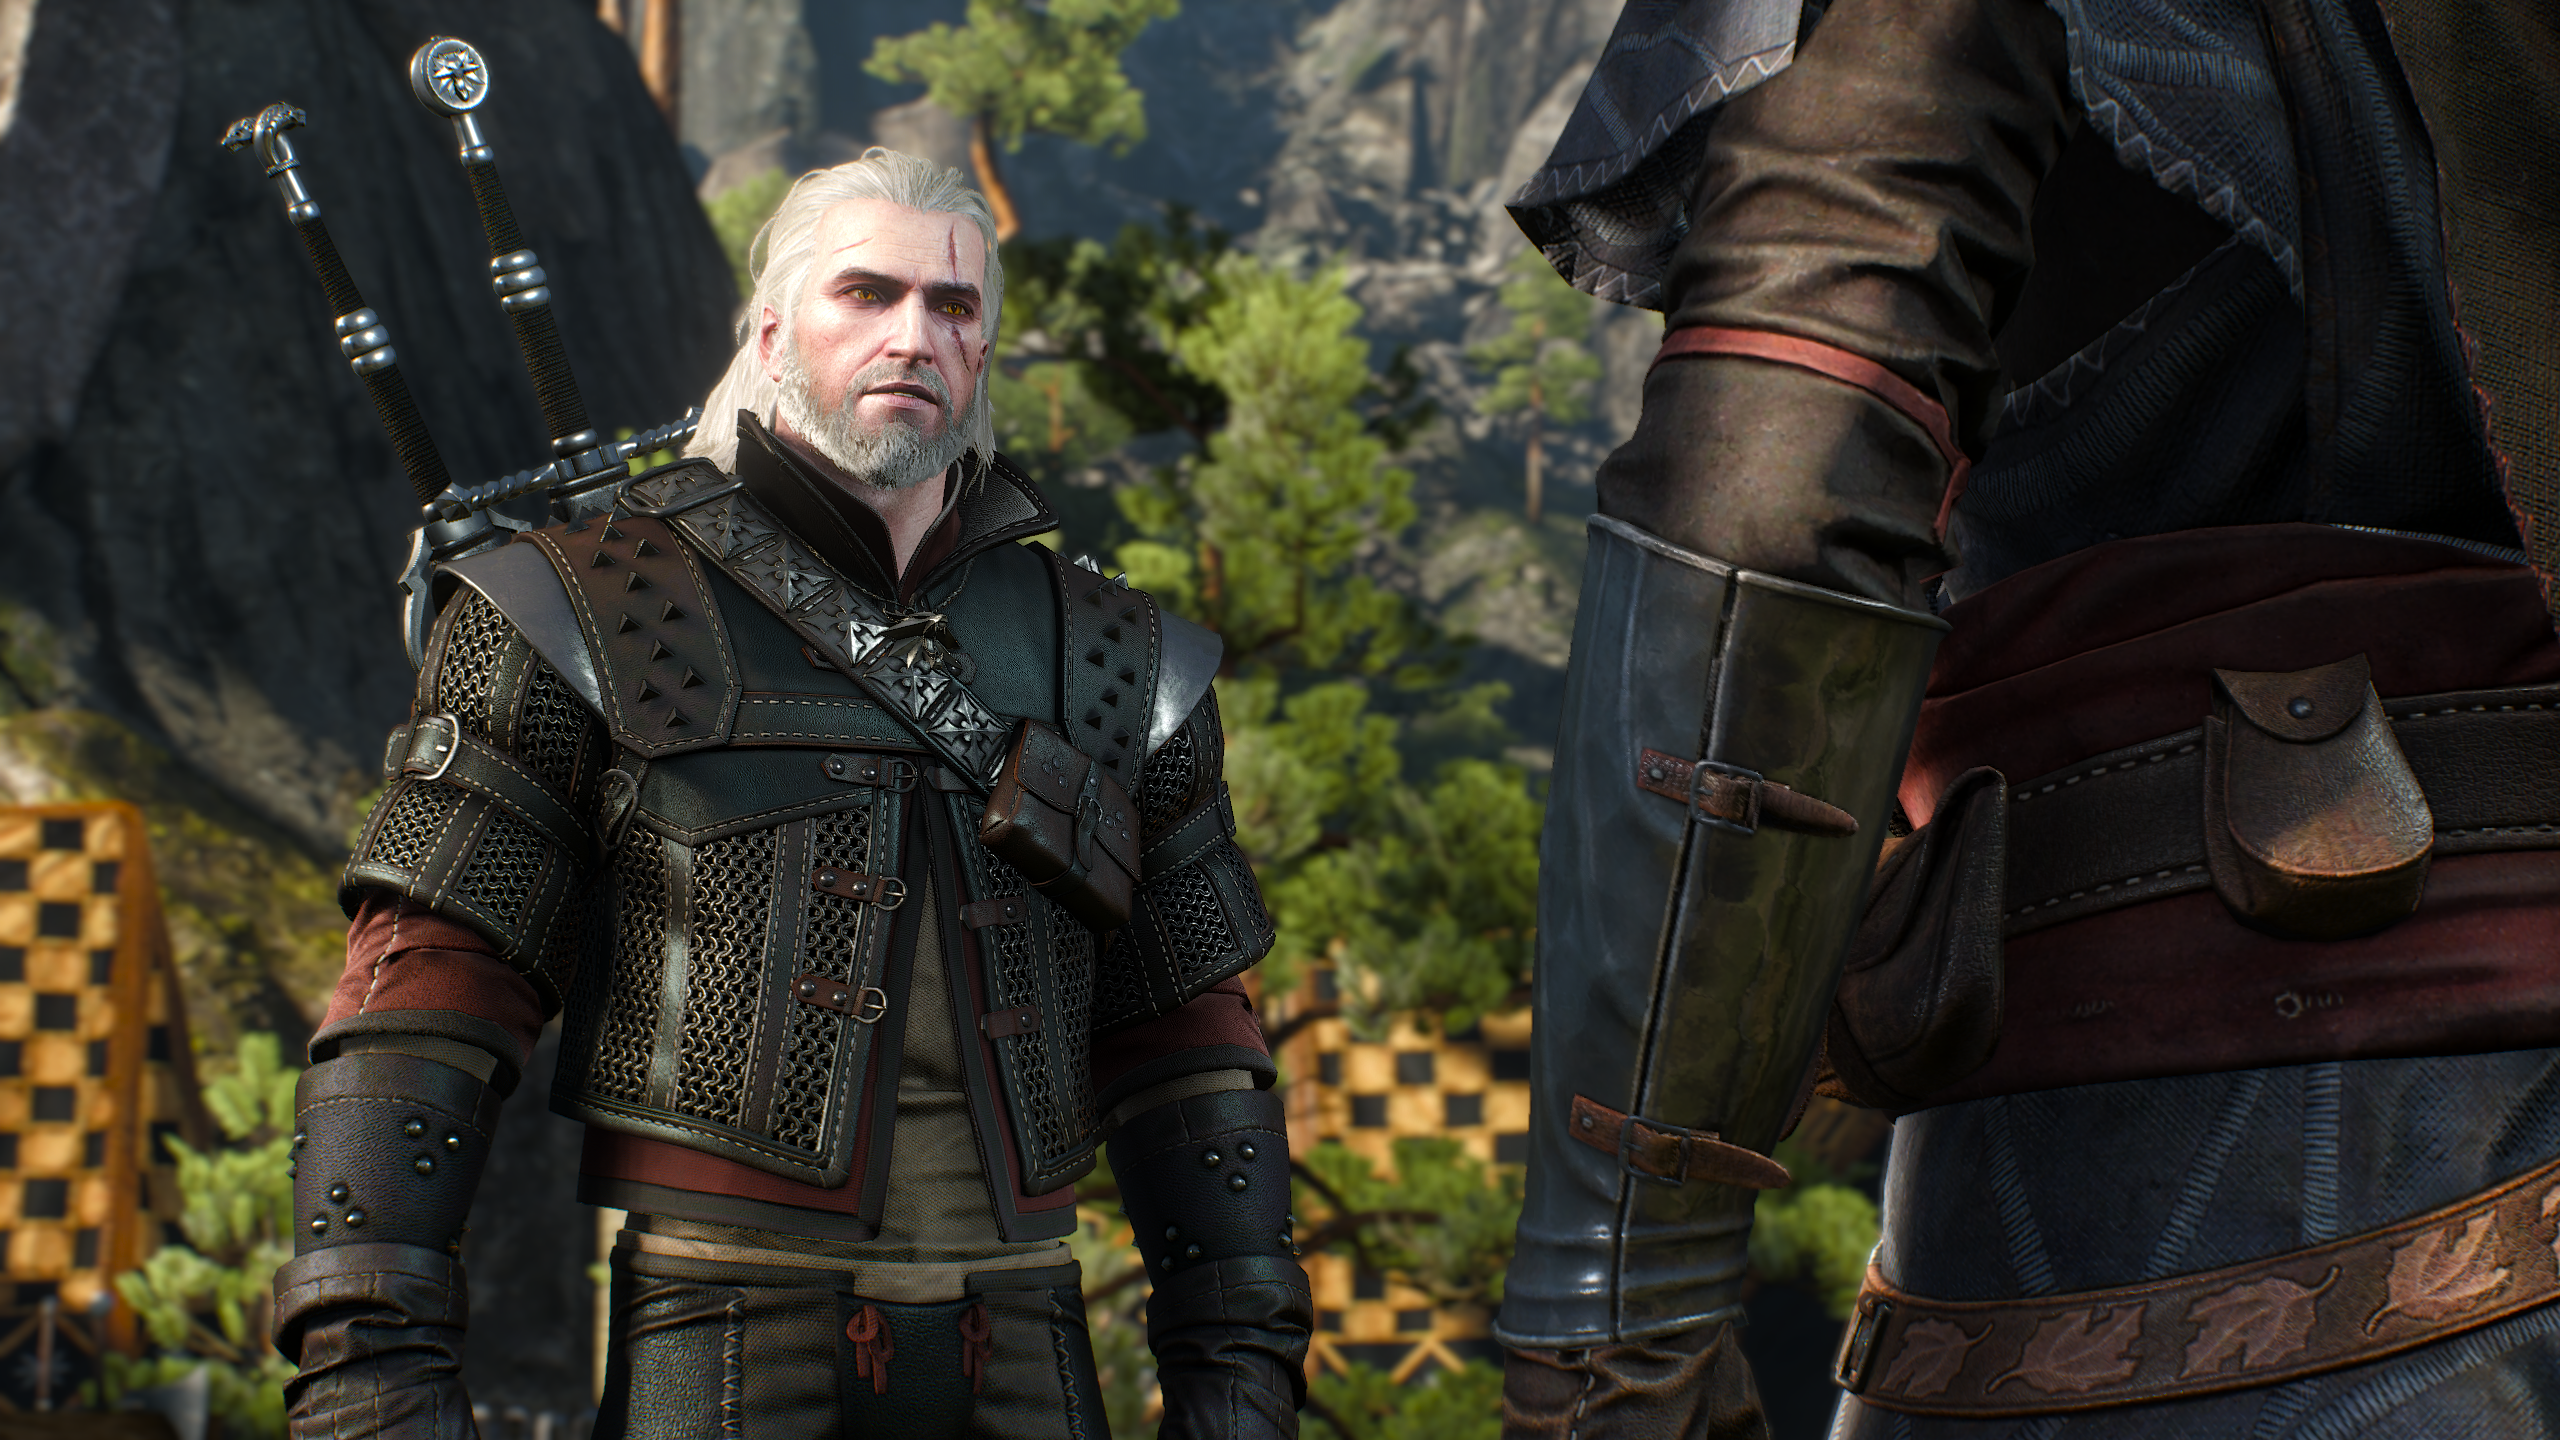 The Witcher 3 has the best armor in video games | PC Gamer